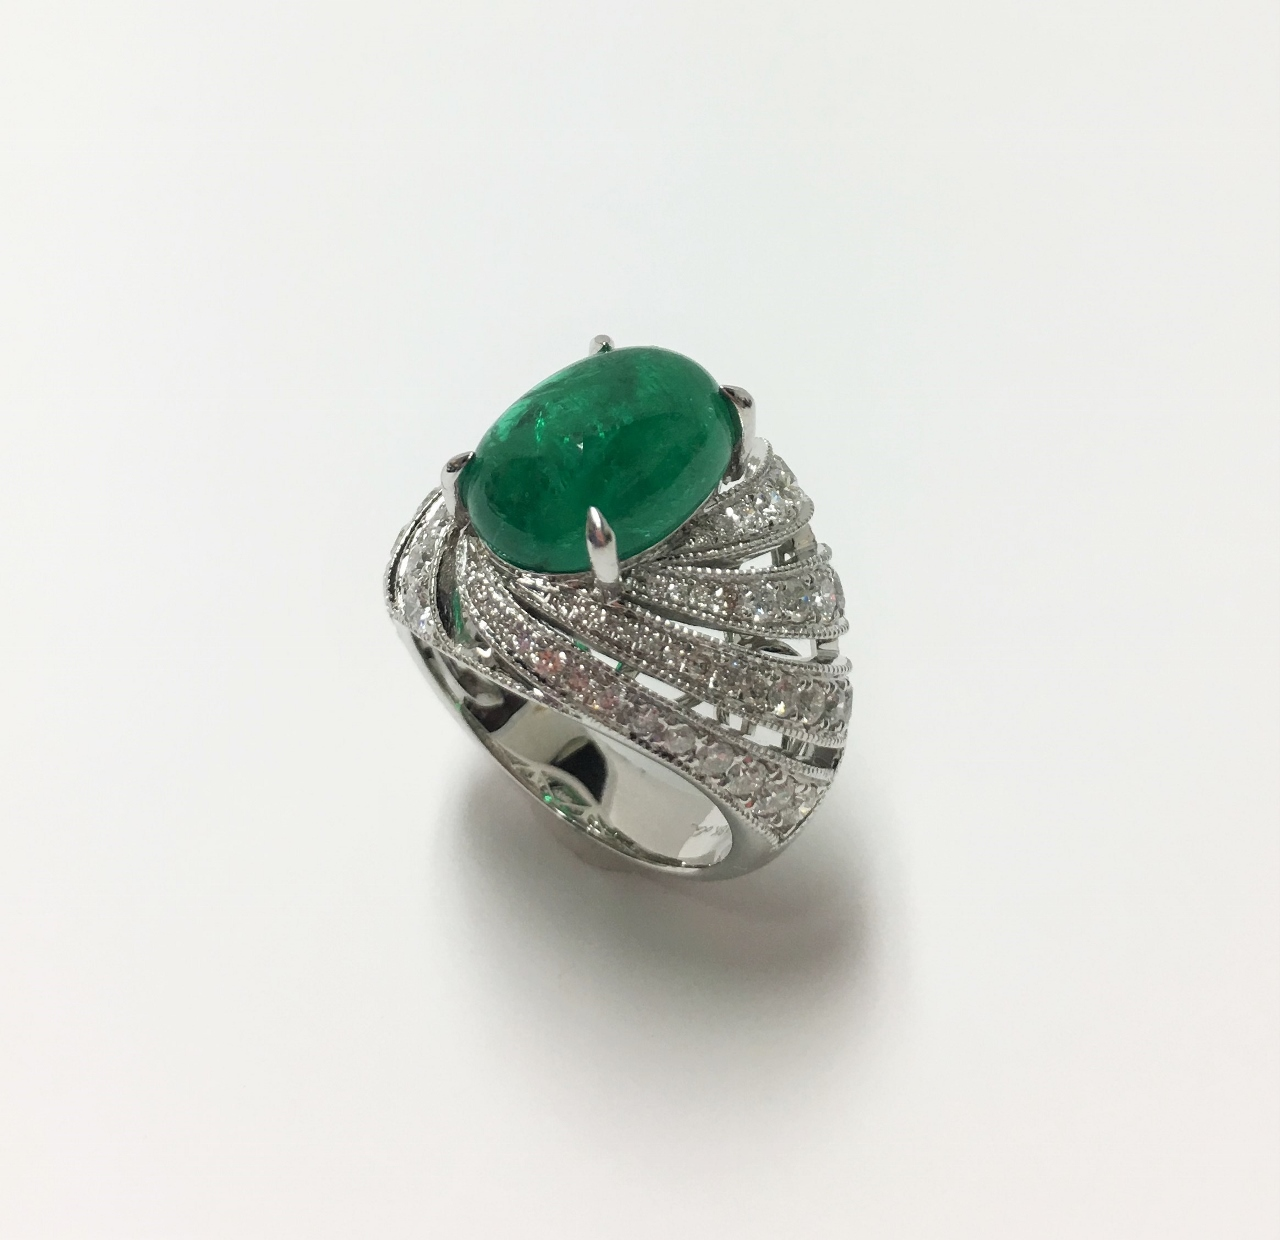 Over 4.5 Carats Cabochon Emerald Diamond Ring